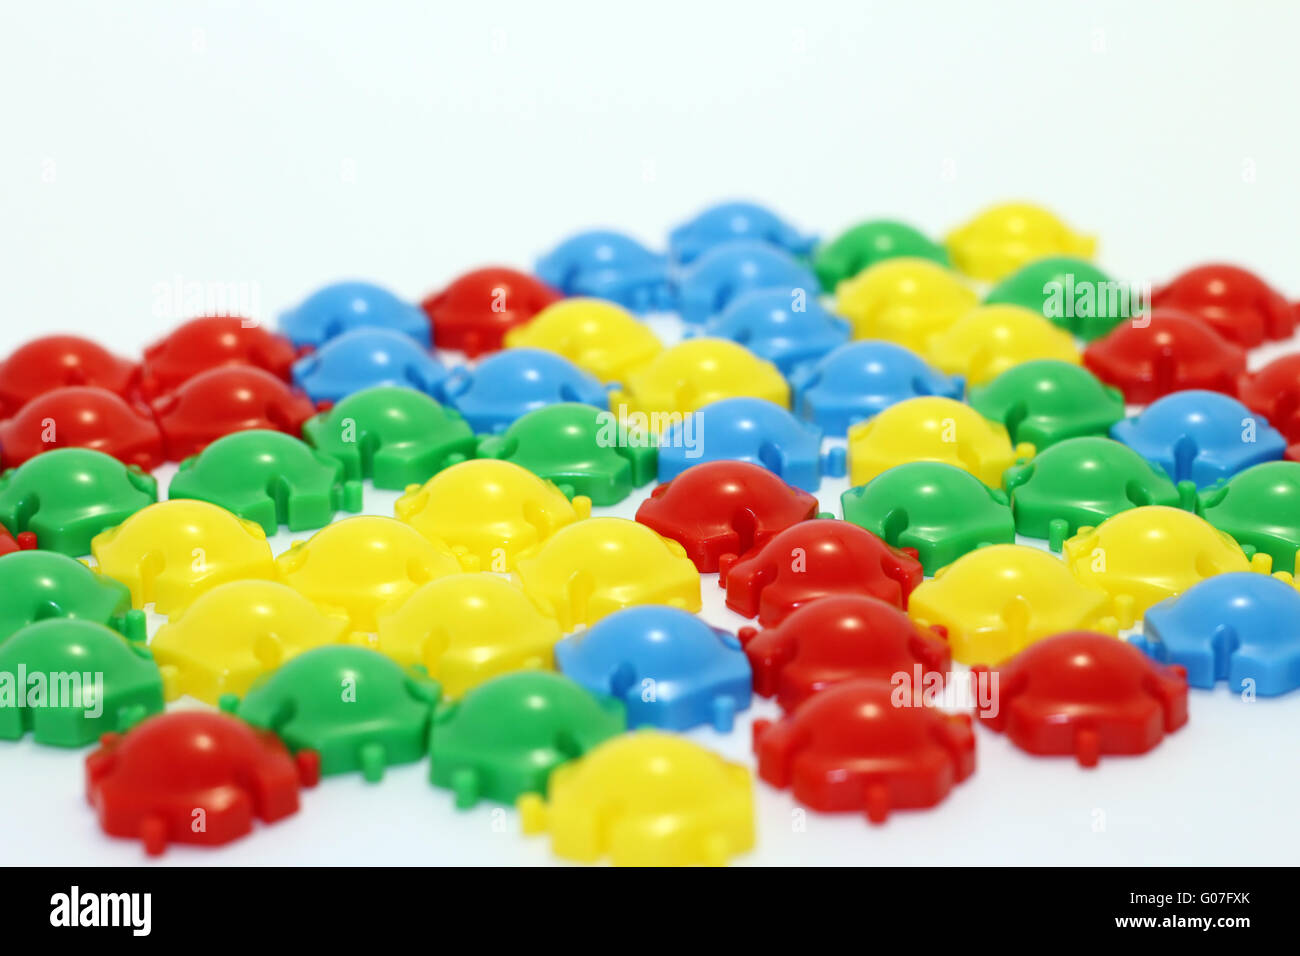 TThe details of the childrens multi-colored mosaic - Stock Image